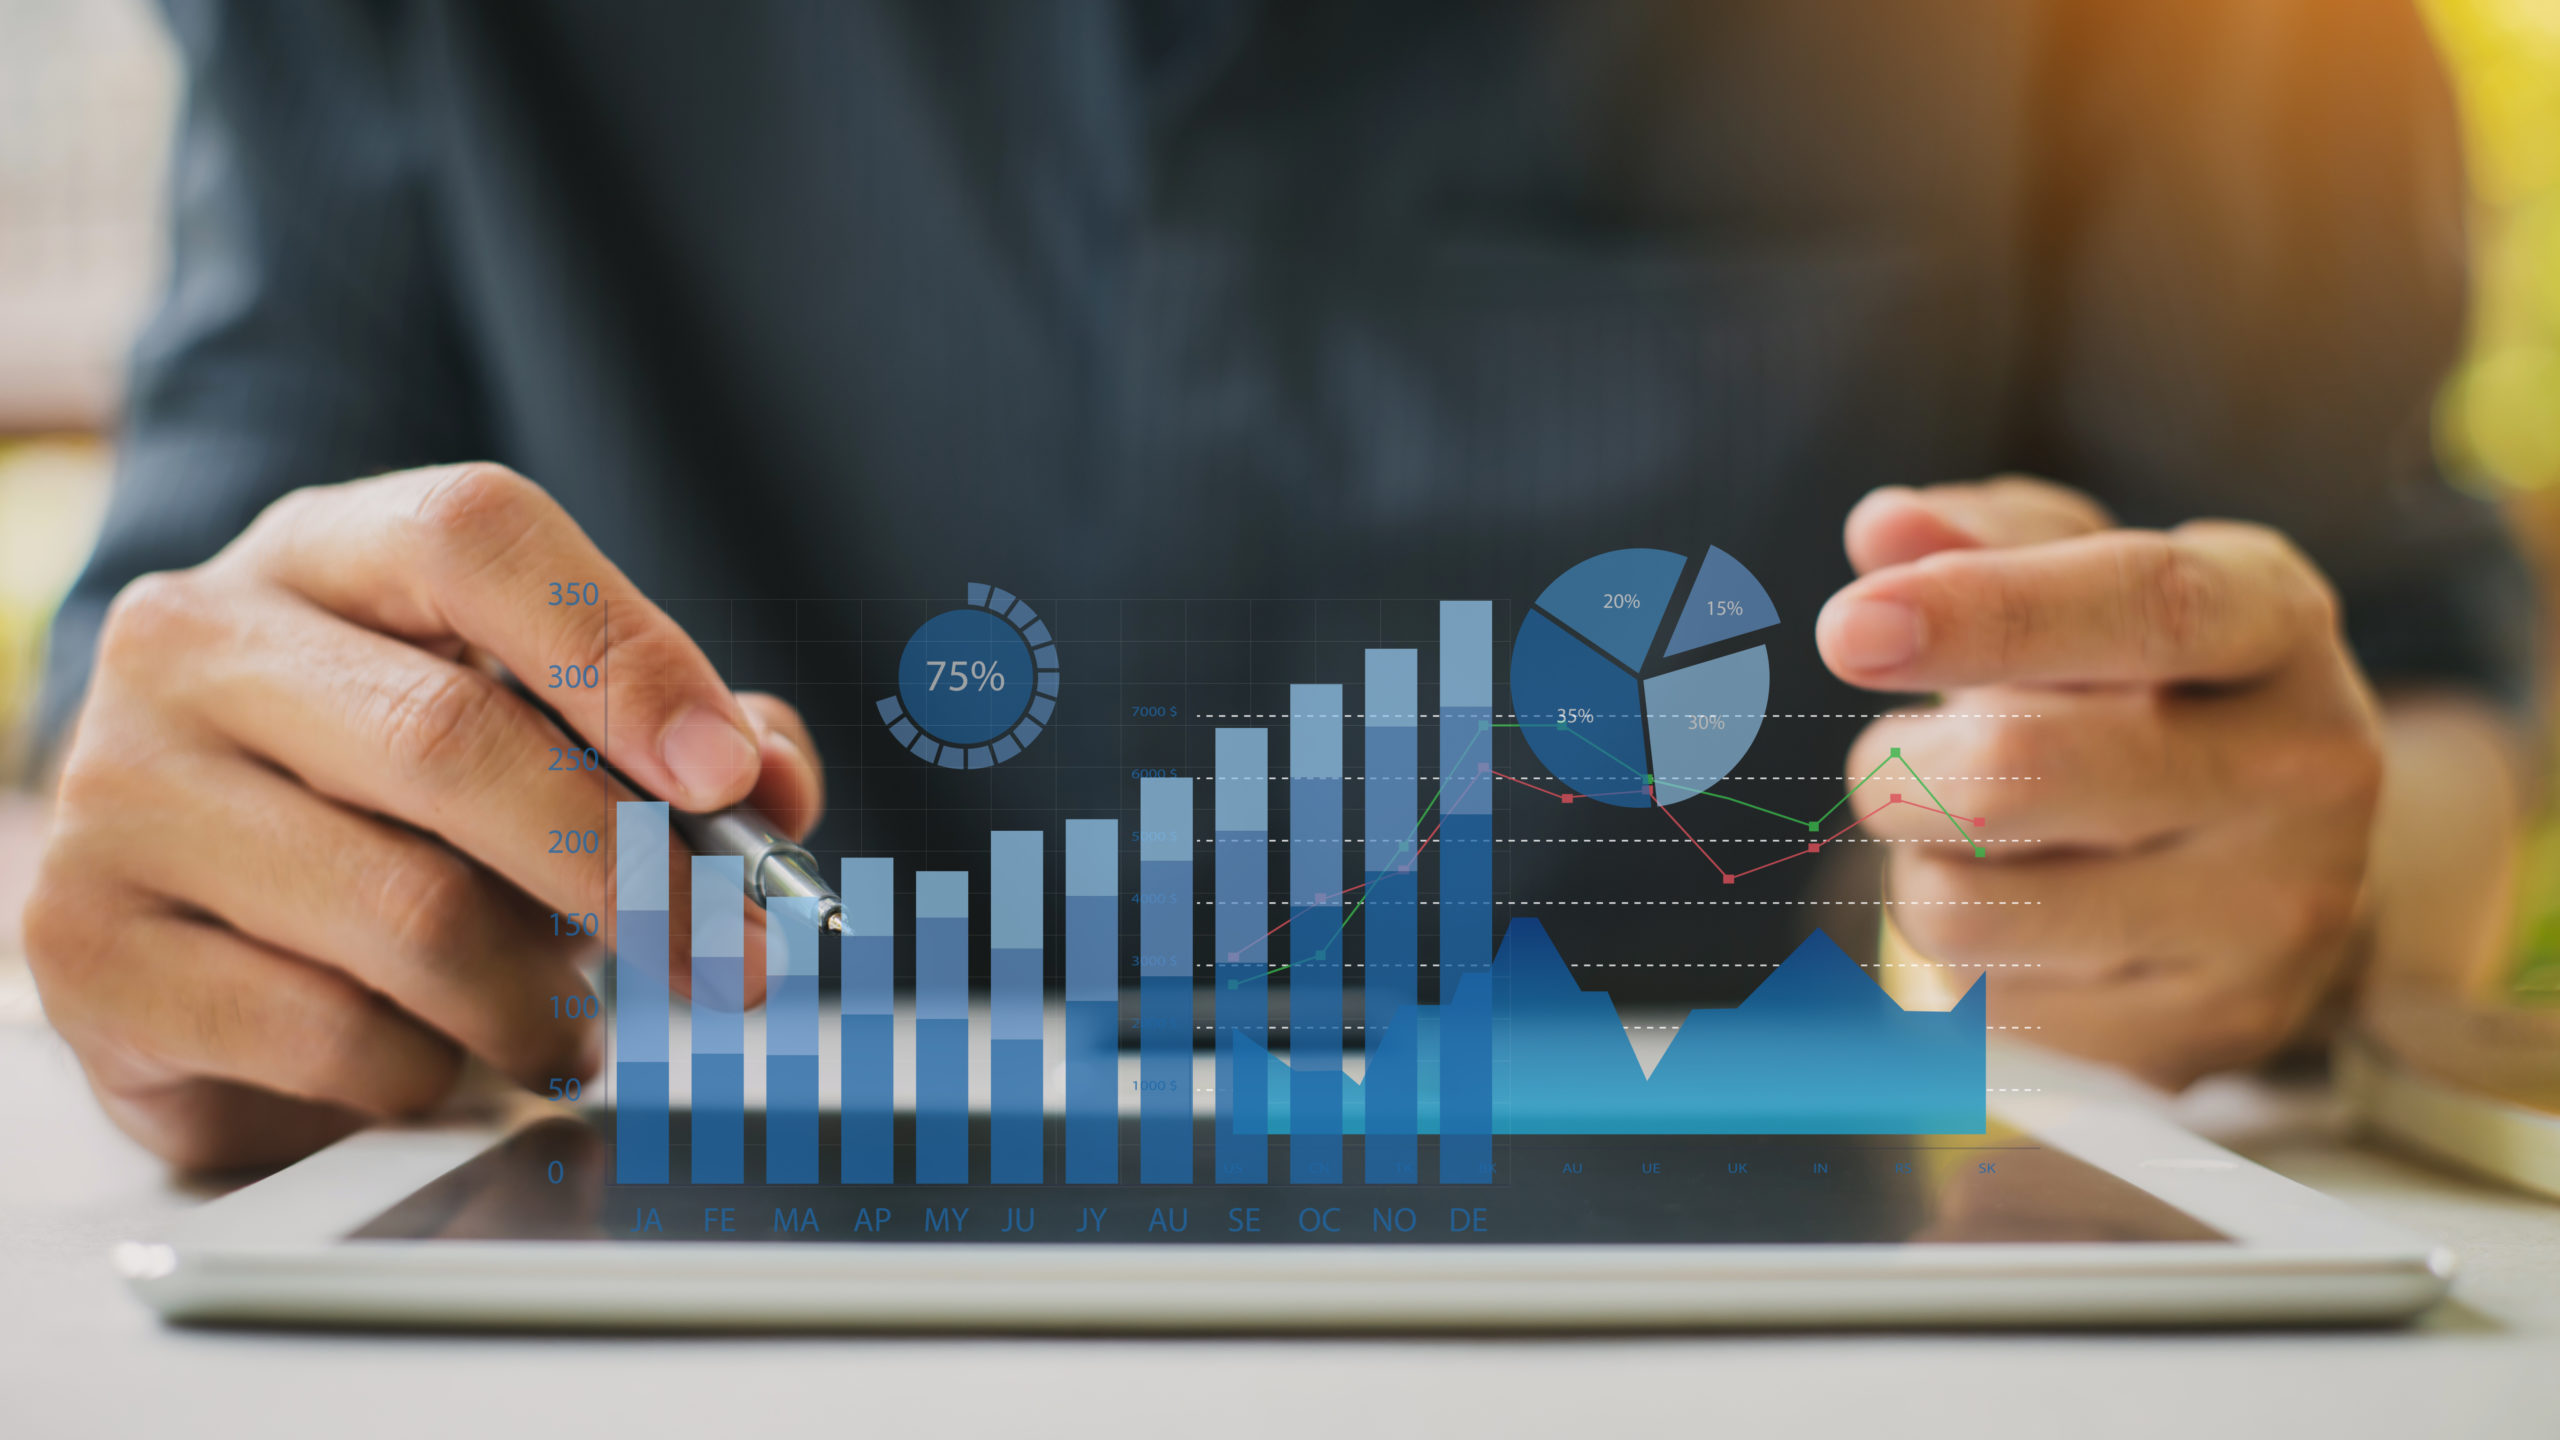 SaaS Statistics and Trends for 2020